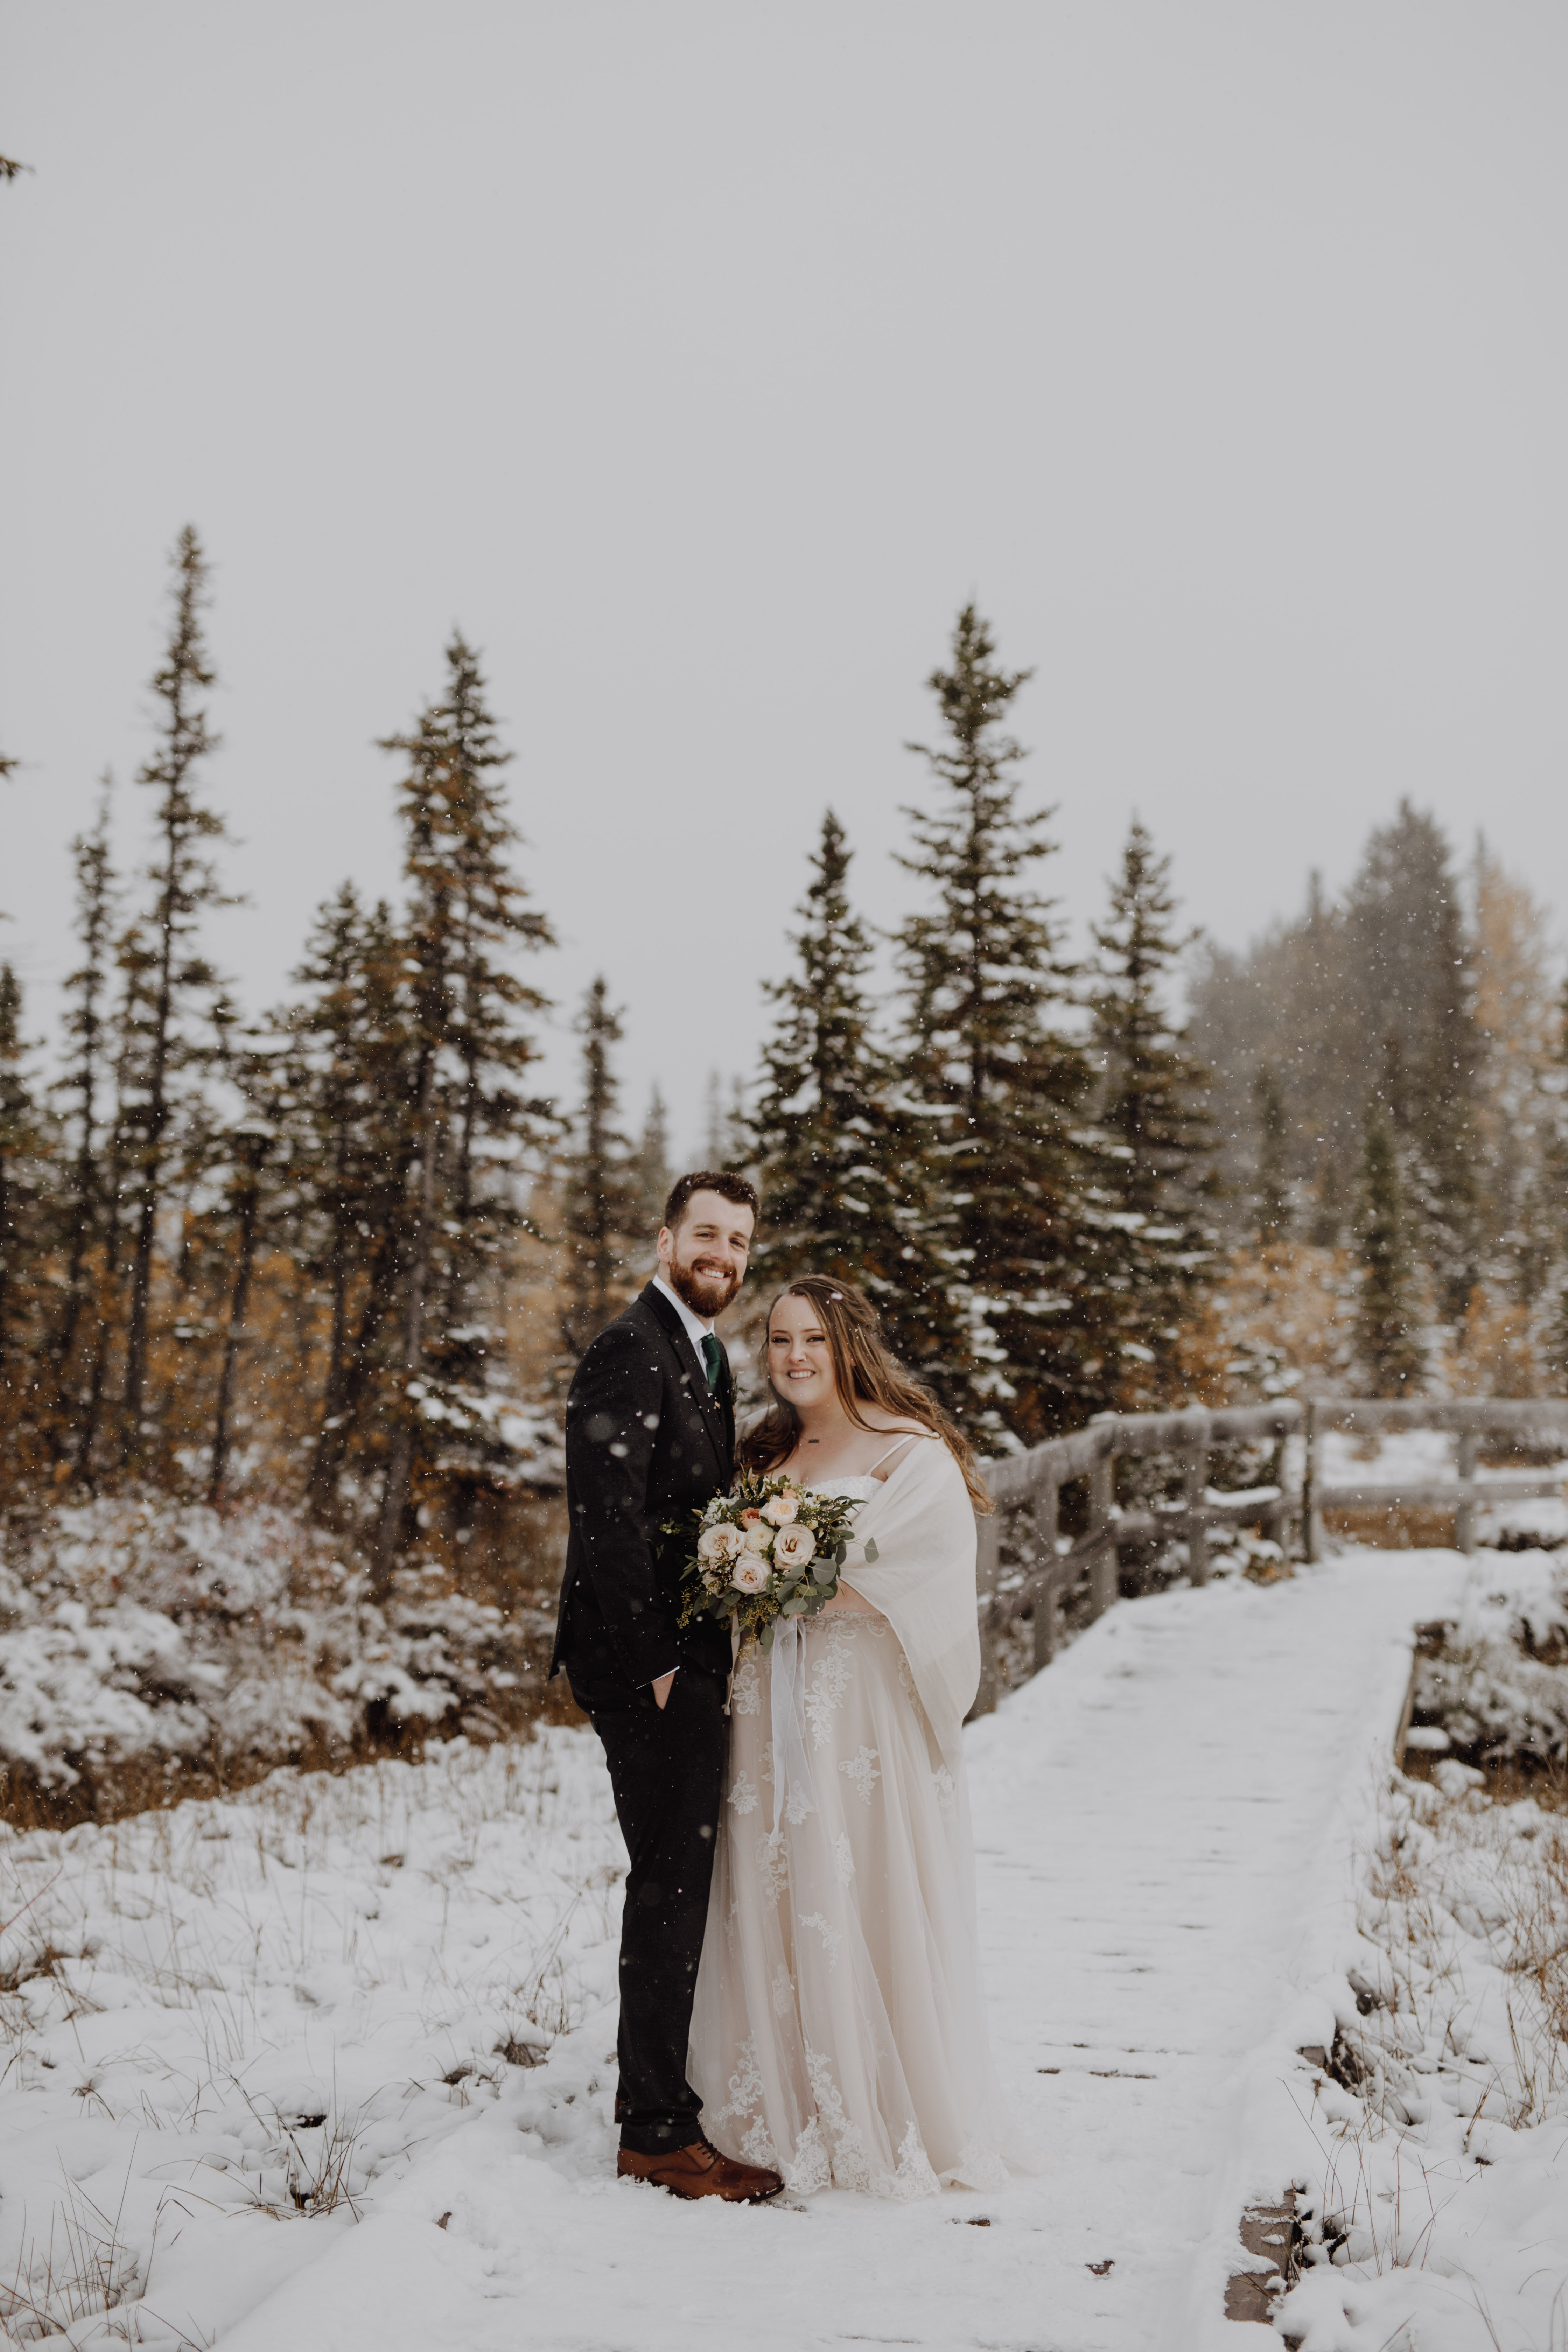 Banff Wedding - bride and groom on a snowy trail